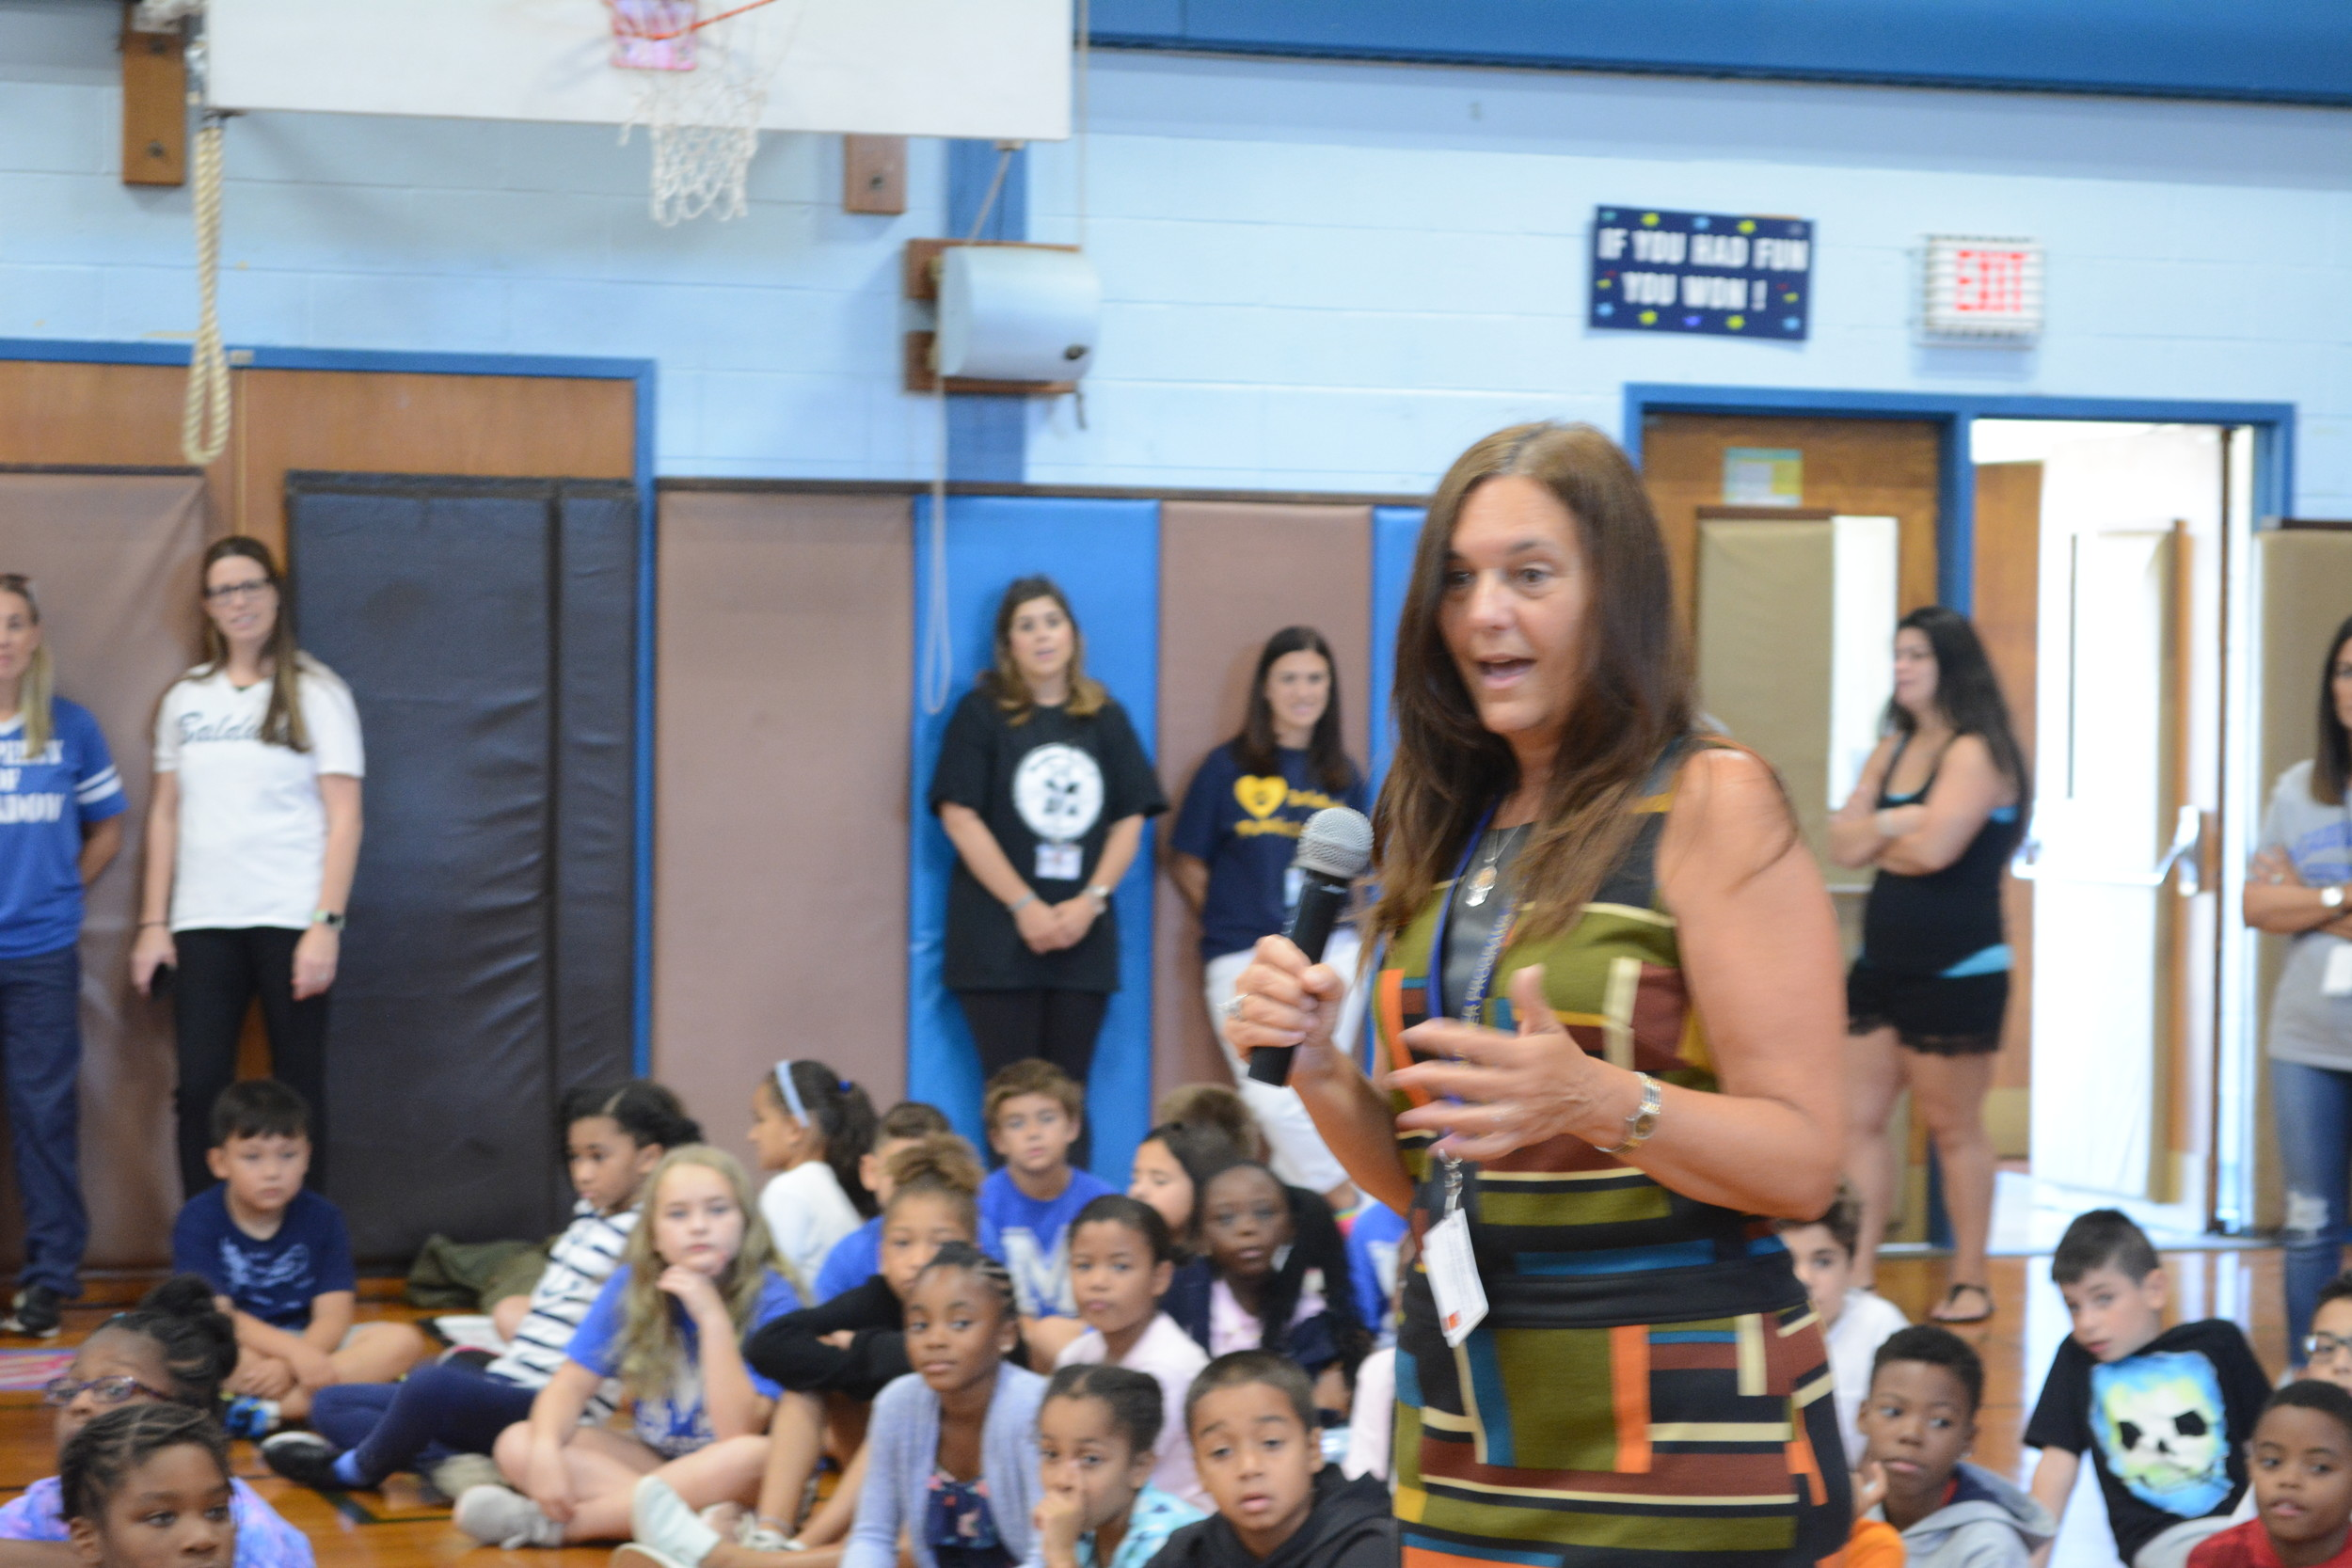 Superintendent of Baldwin Schools, Dr. Shari Camhi, addressed the assemly of students during a pep rally to get students excited about the start of the school year..